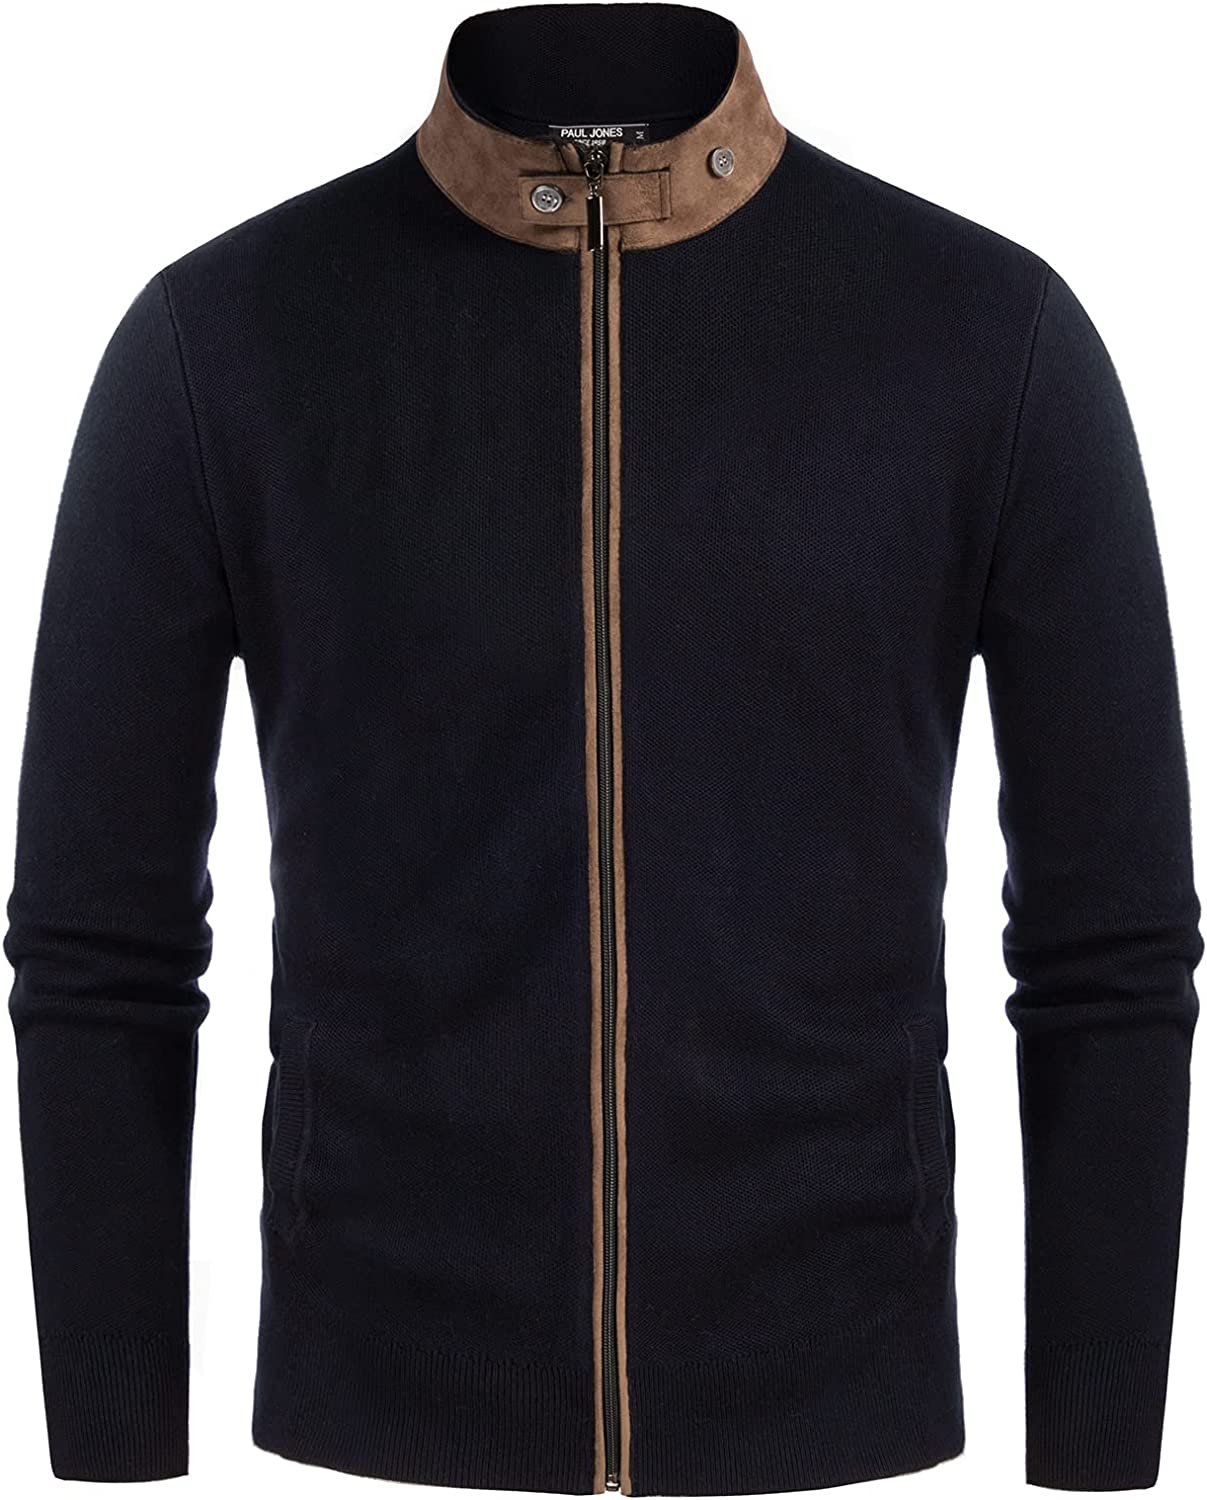 Men's supreme Suede Patchwork Stand Collar Detroit Mall Swe Cardigan Zip Knitted Full